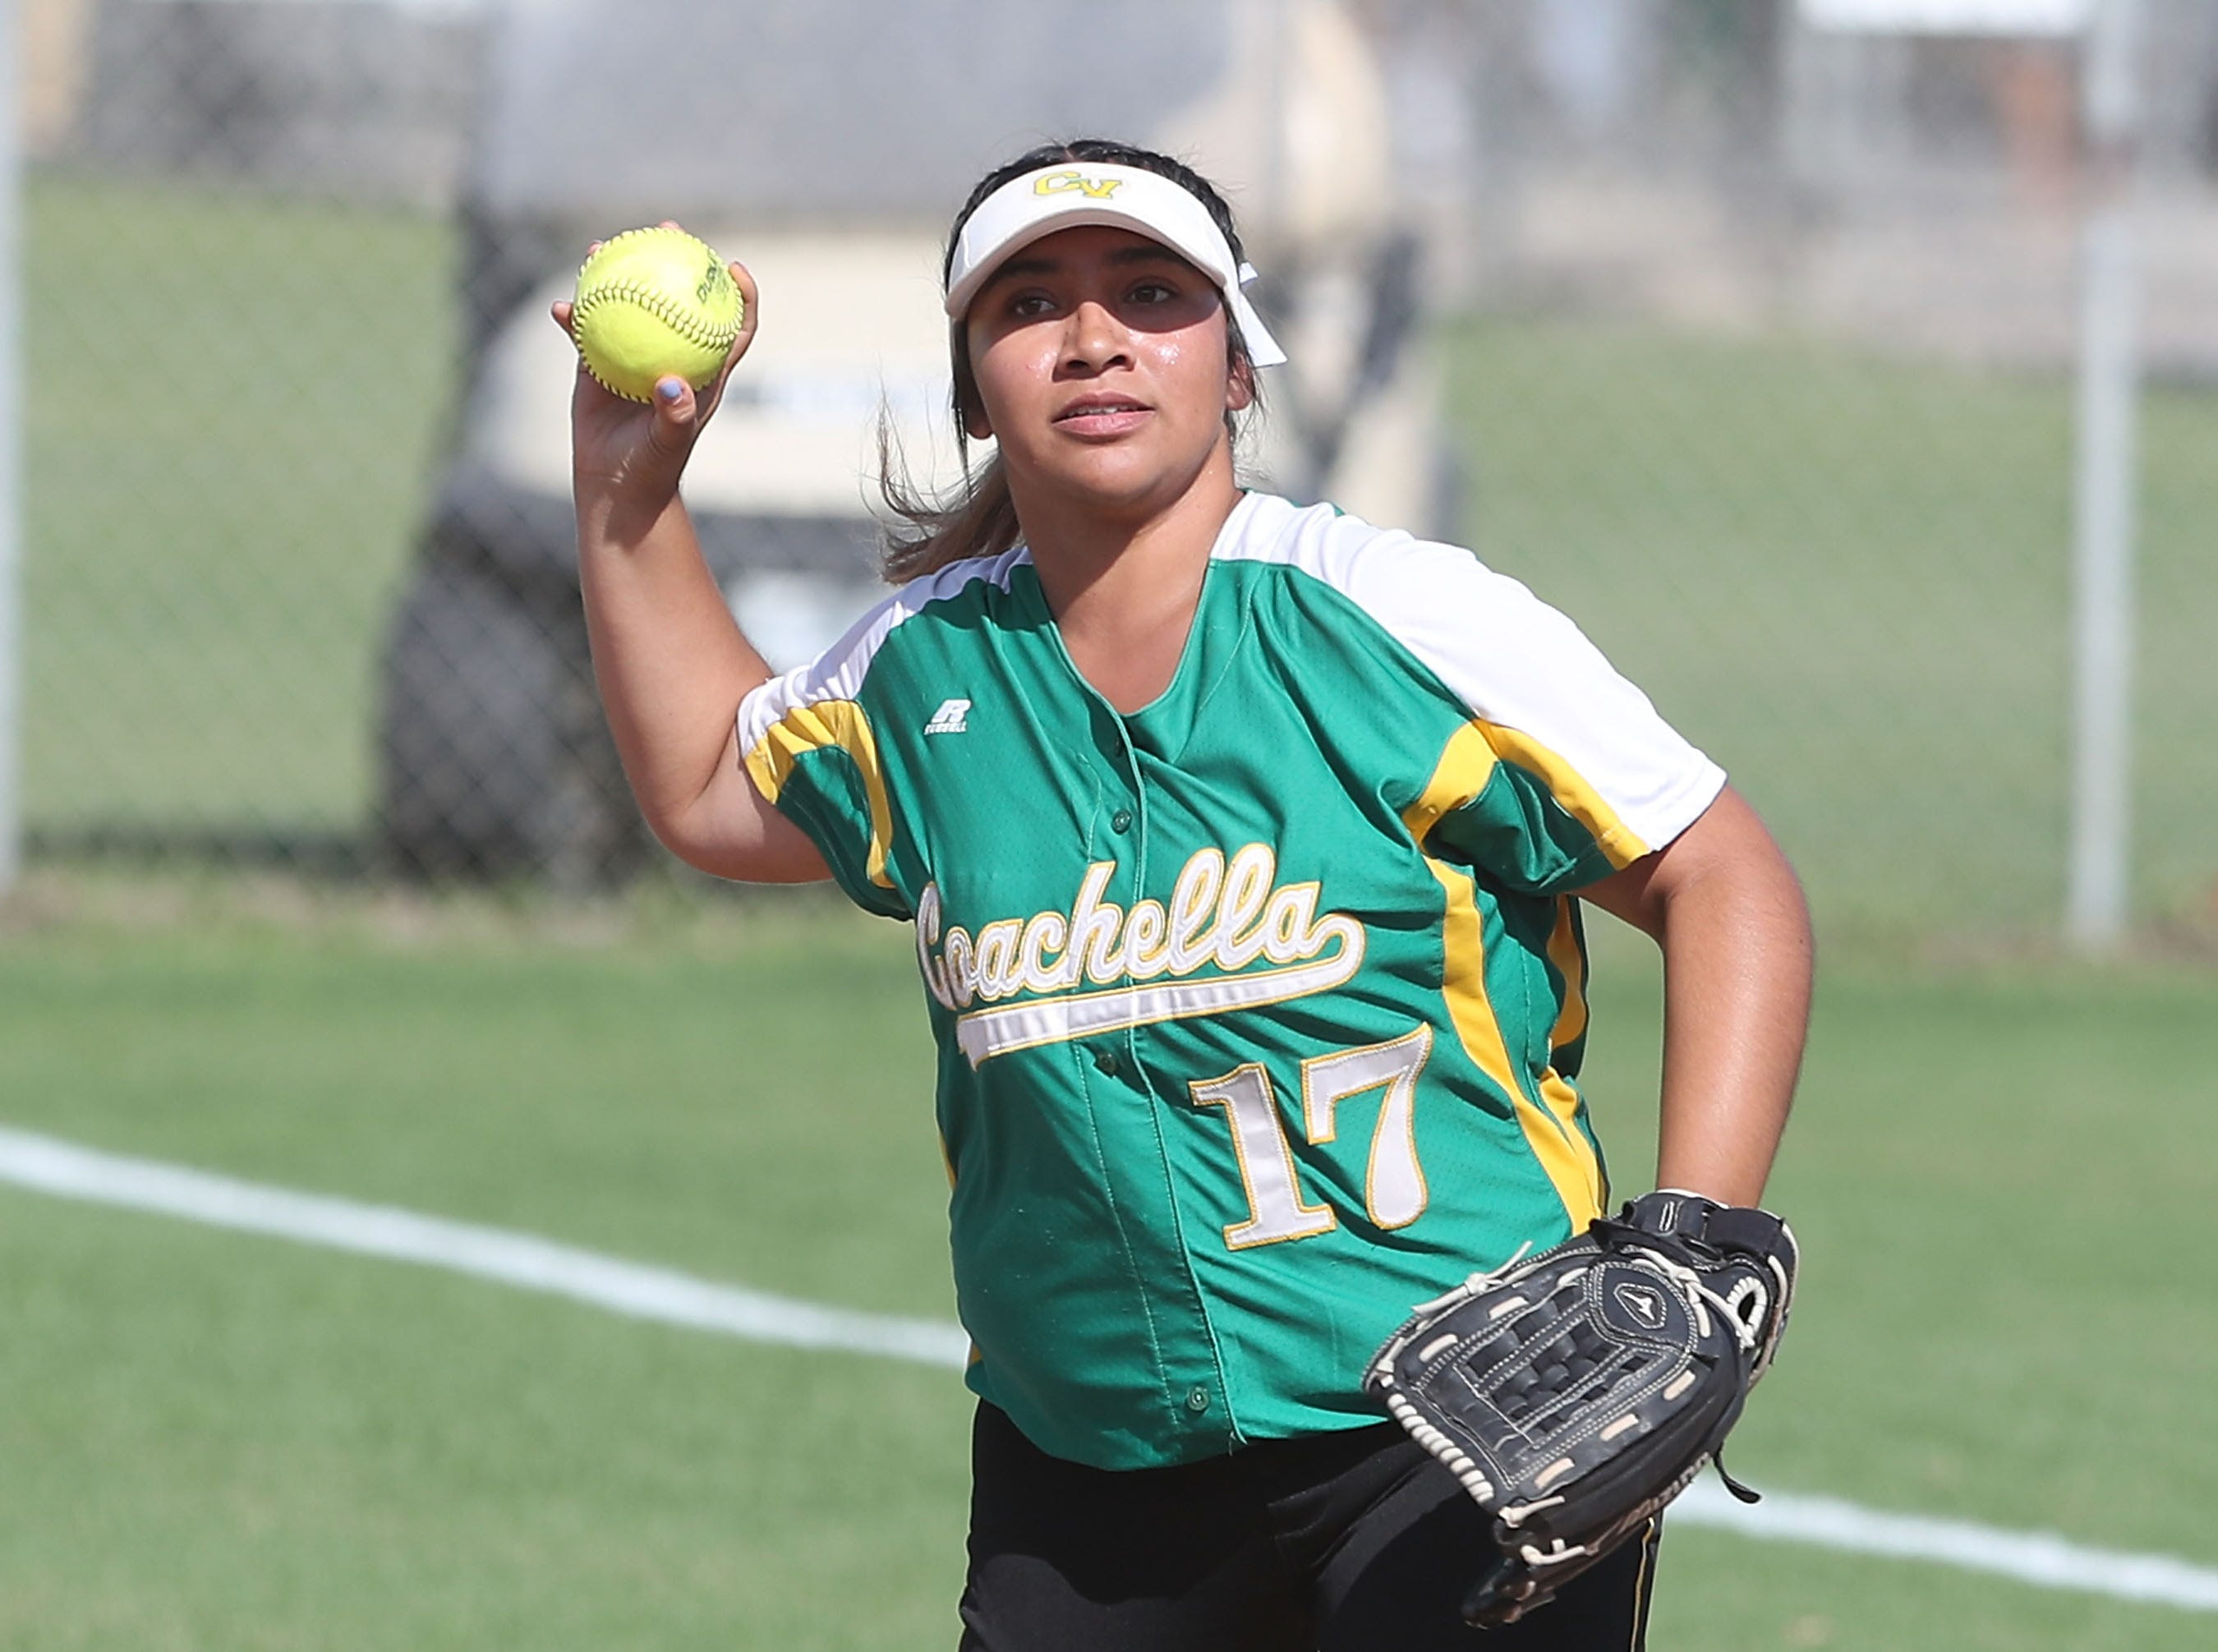 Melissa Rodriguez of Coachella Valley makes an out against Anaheim during the Arabs loss, May 9, 2019.